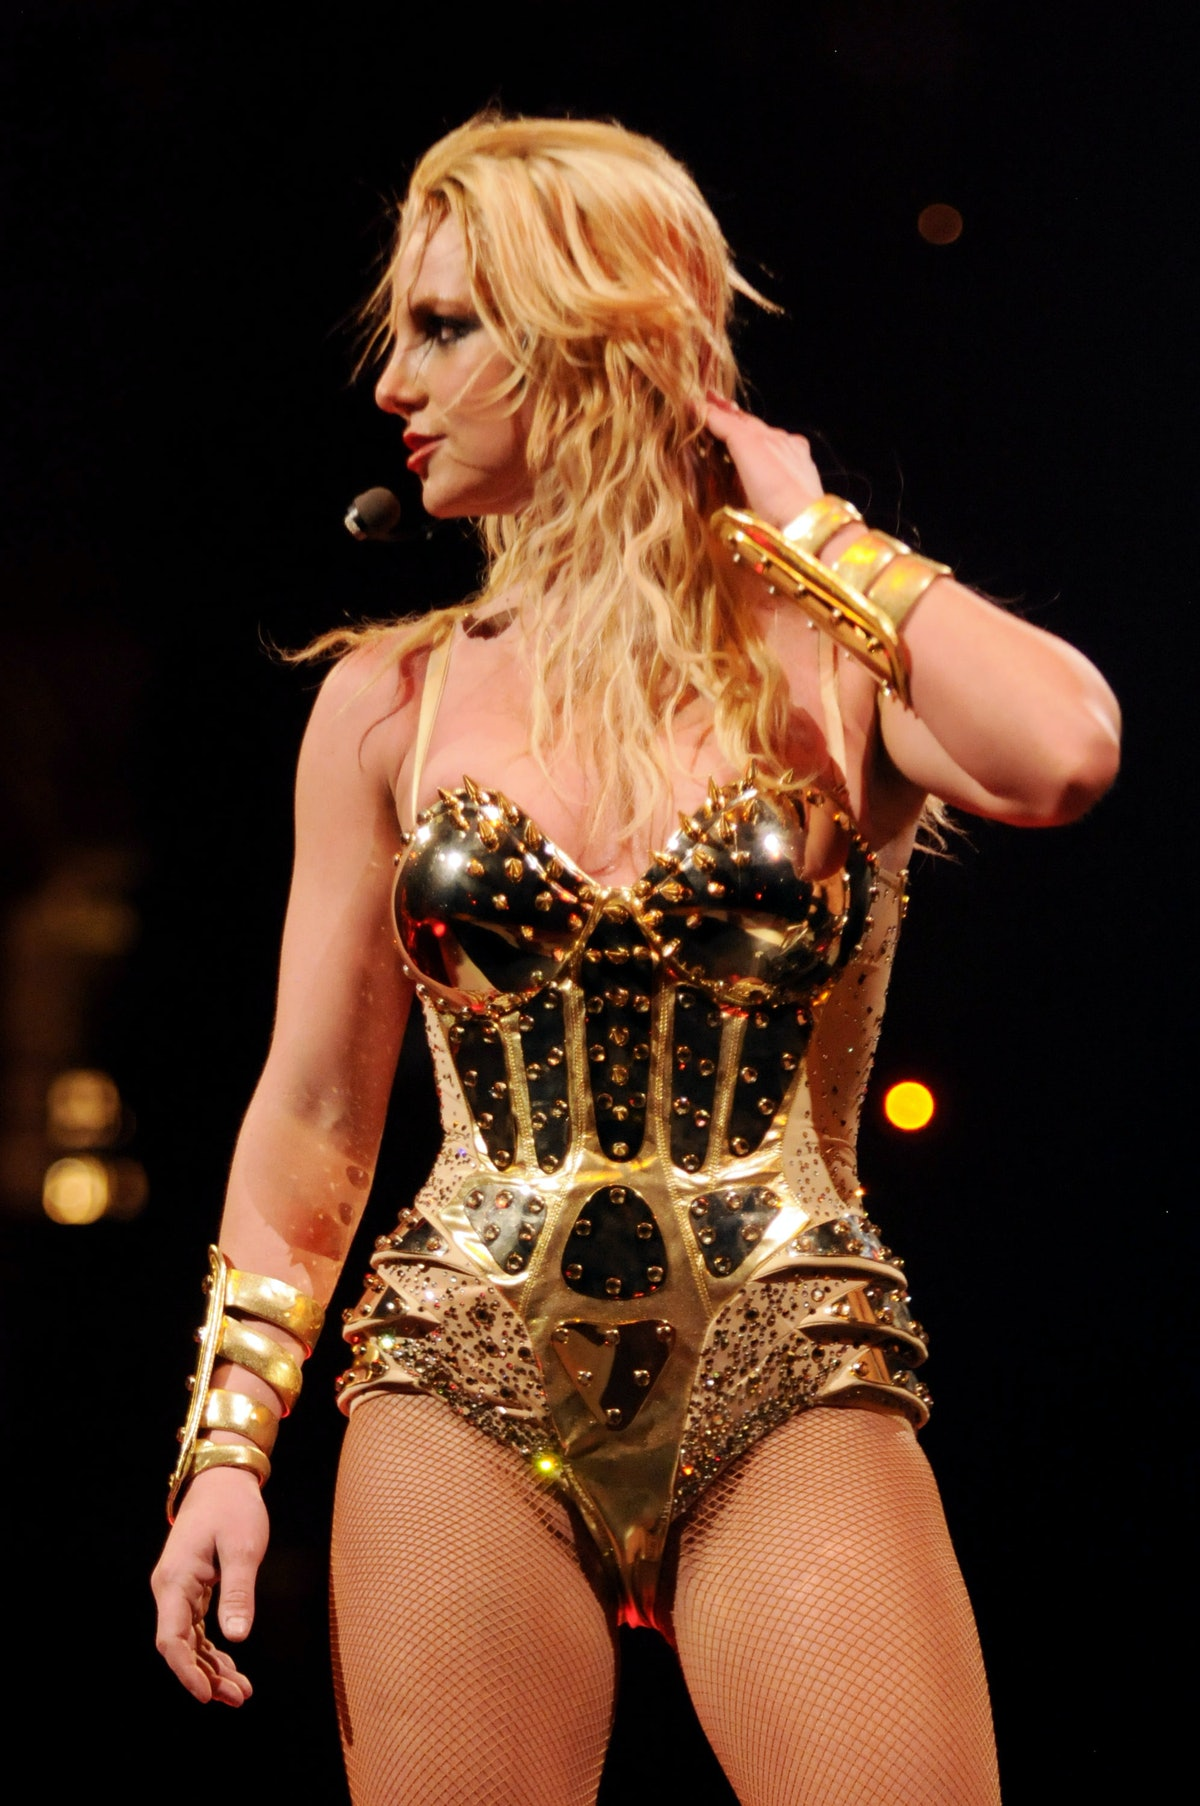 """**Exclusive Coverage**  Singer Britney Spears performs onstage during the opening night of """"The Circus Starring Britney Spears"""" tour at the New Orleans Arena on March 3, 2009 in New Orleans, Louisiana."""